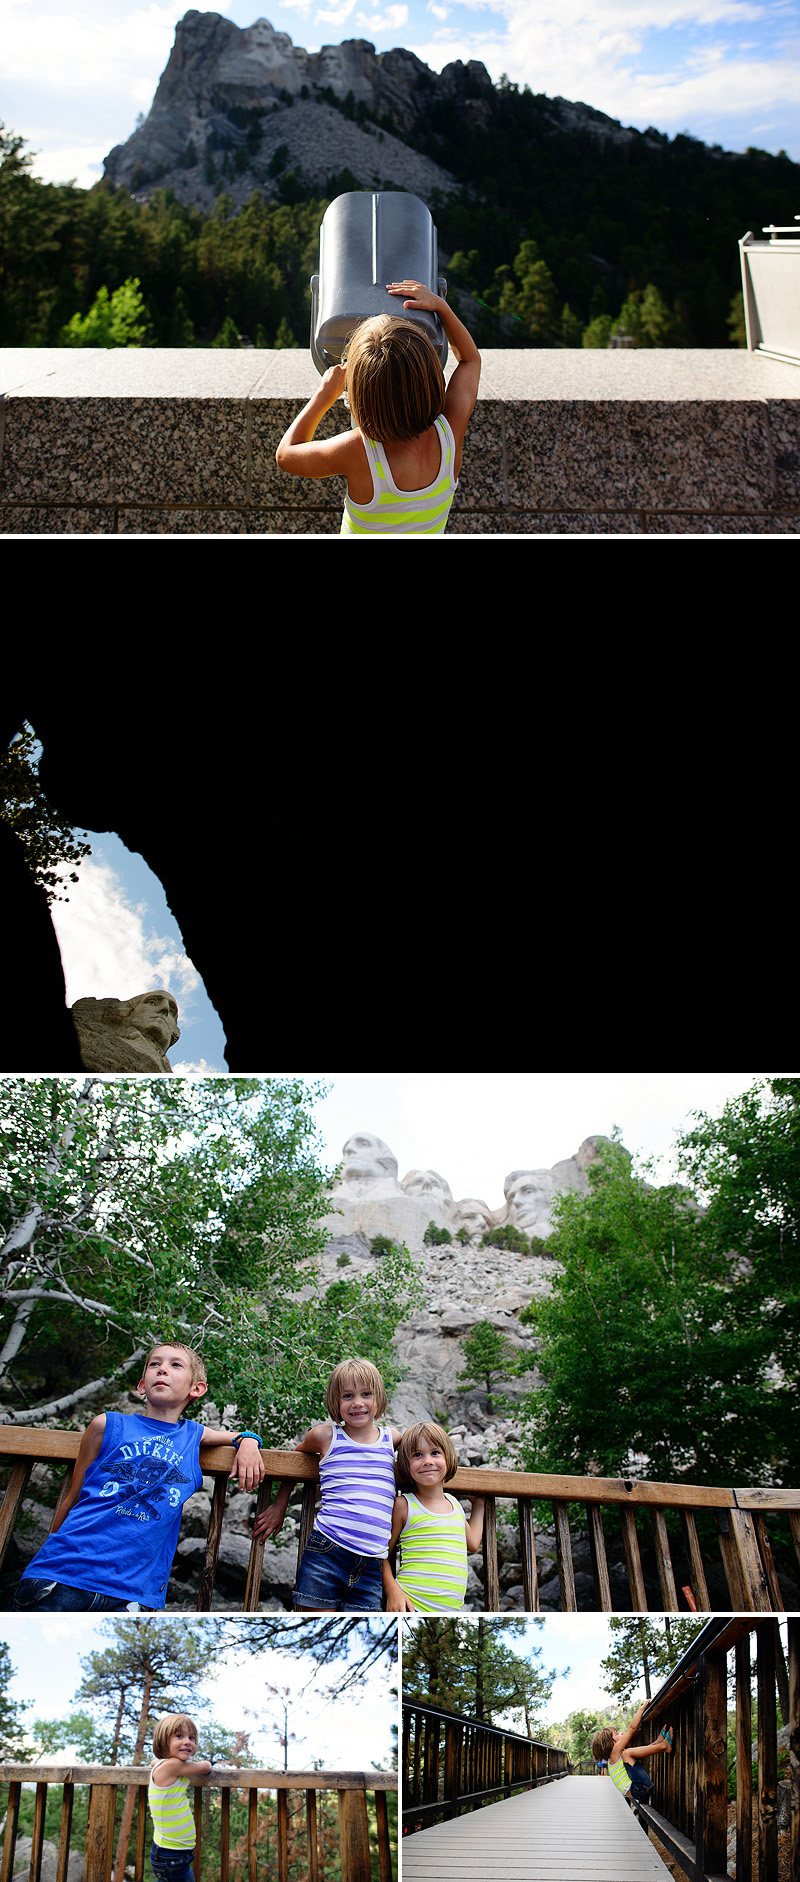 summer vacation to mount rushmore